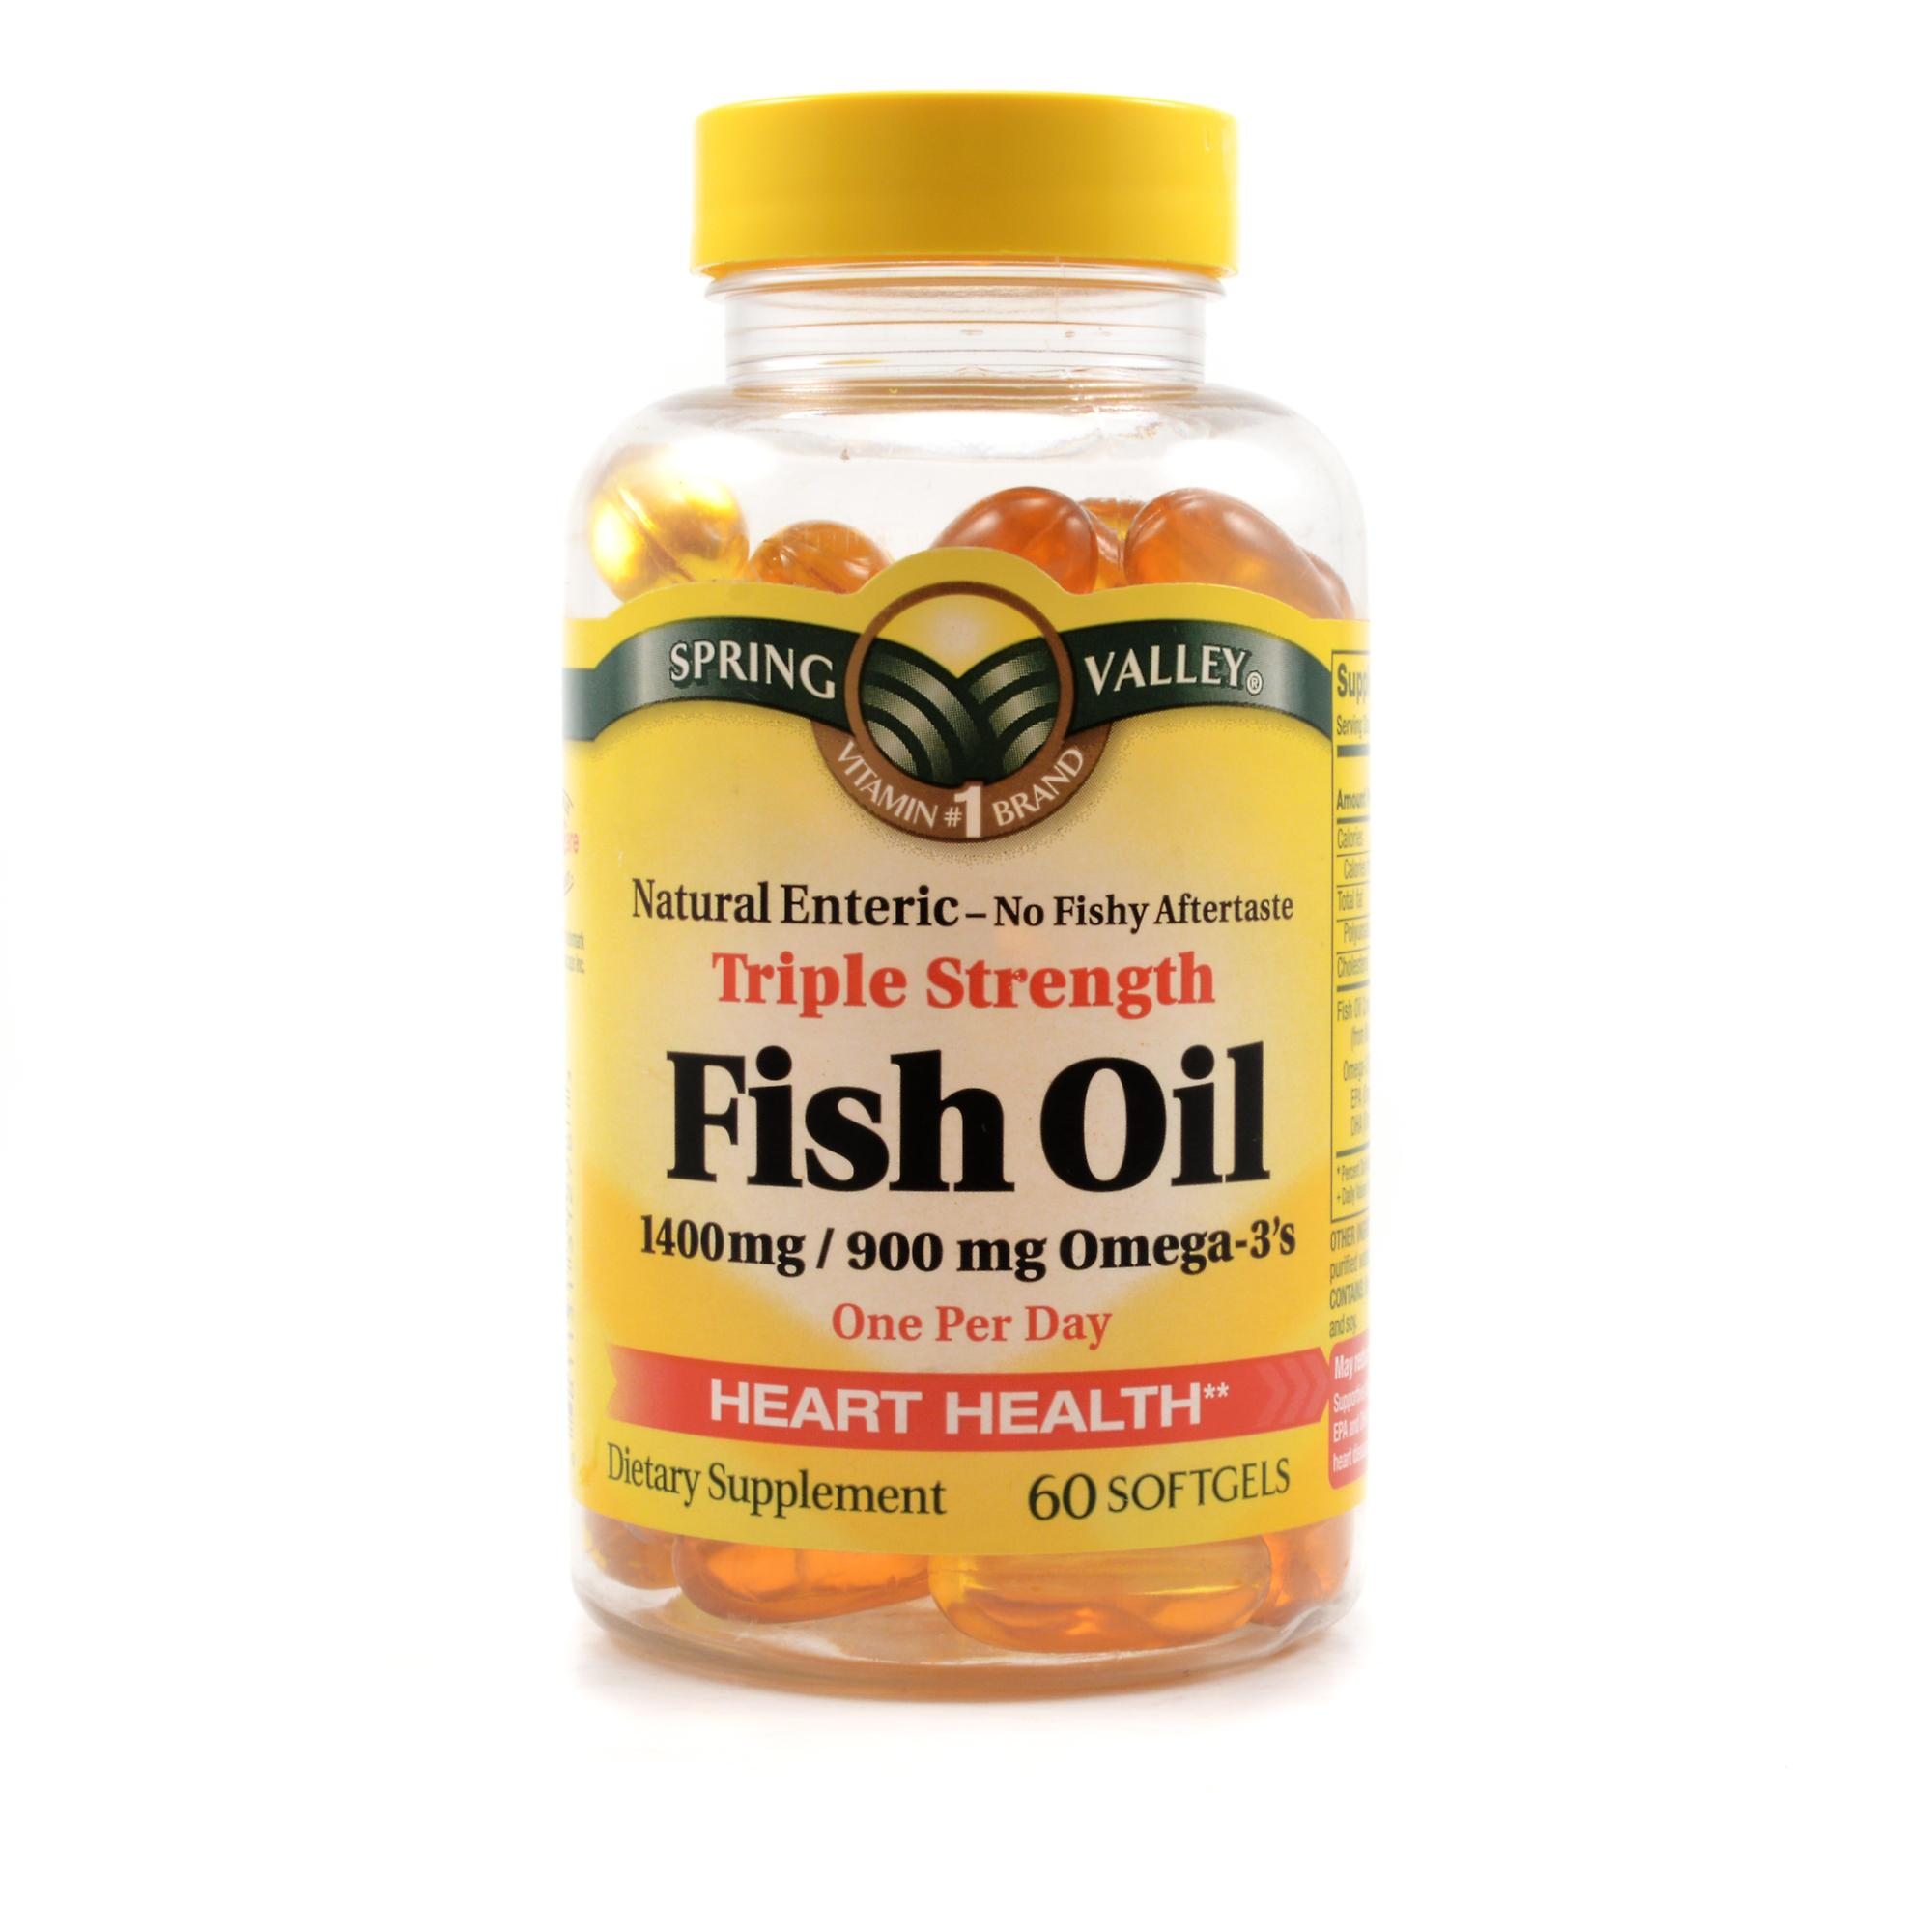 Spring Valley Triple Strength Fish Oil Review Labdoor